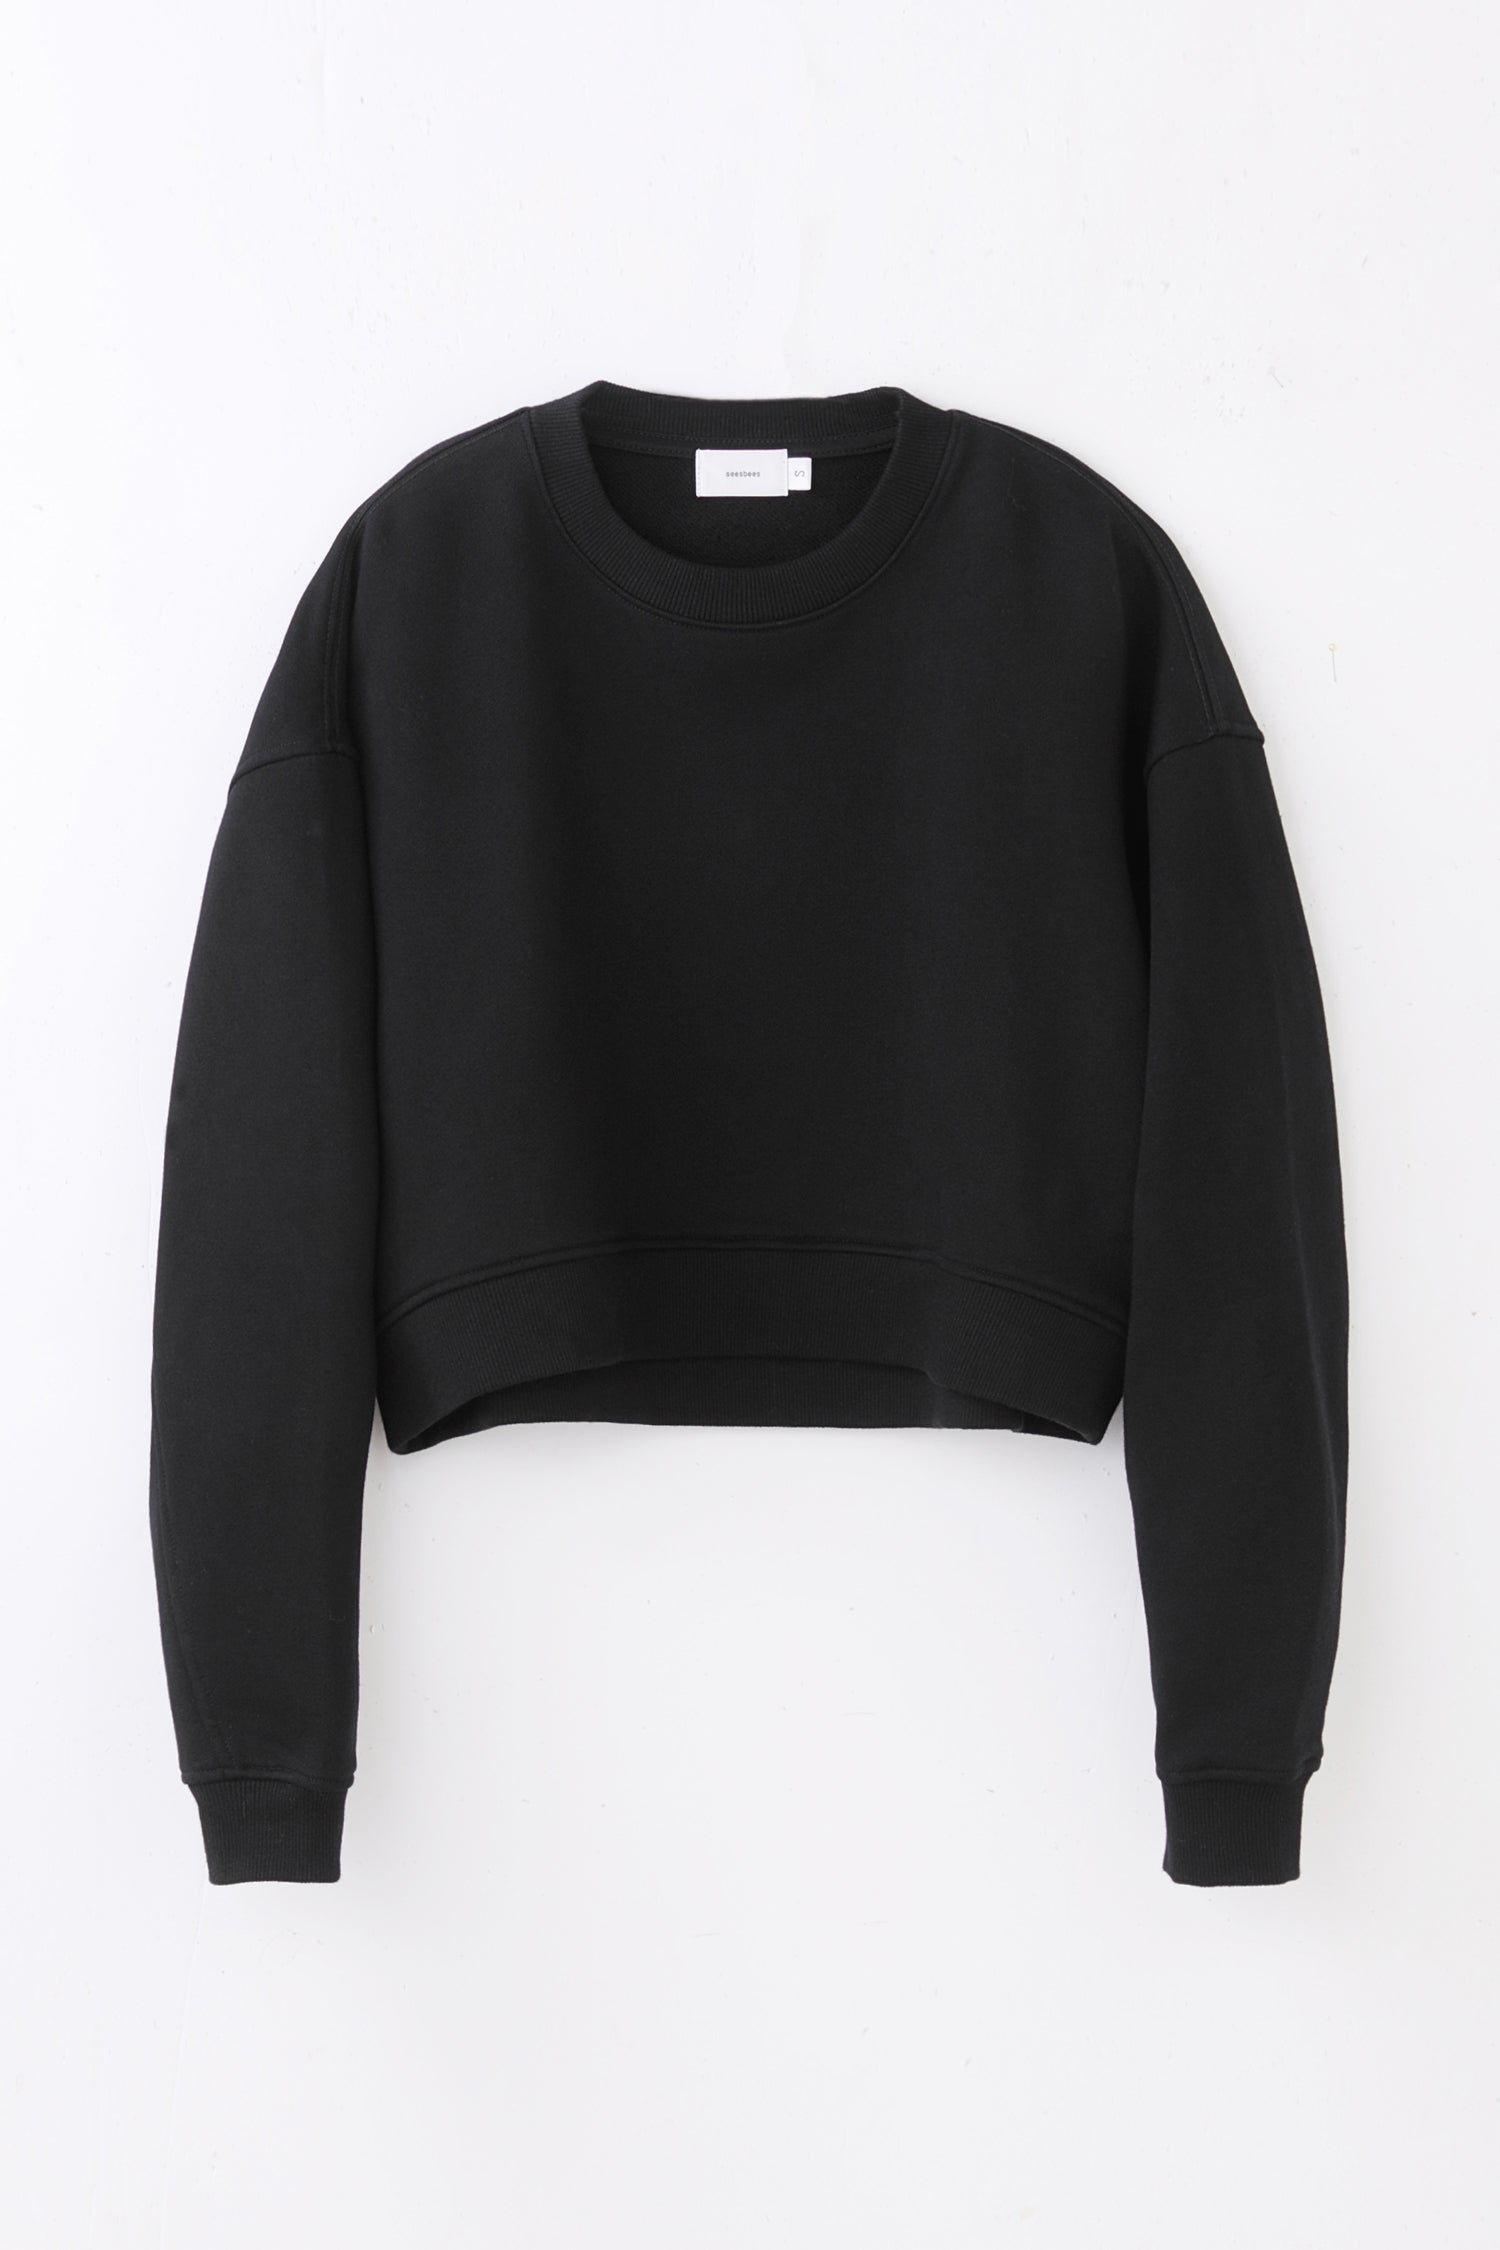 short/loose sweatshirt -black-